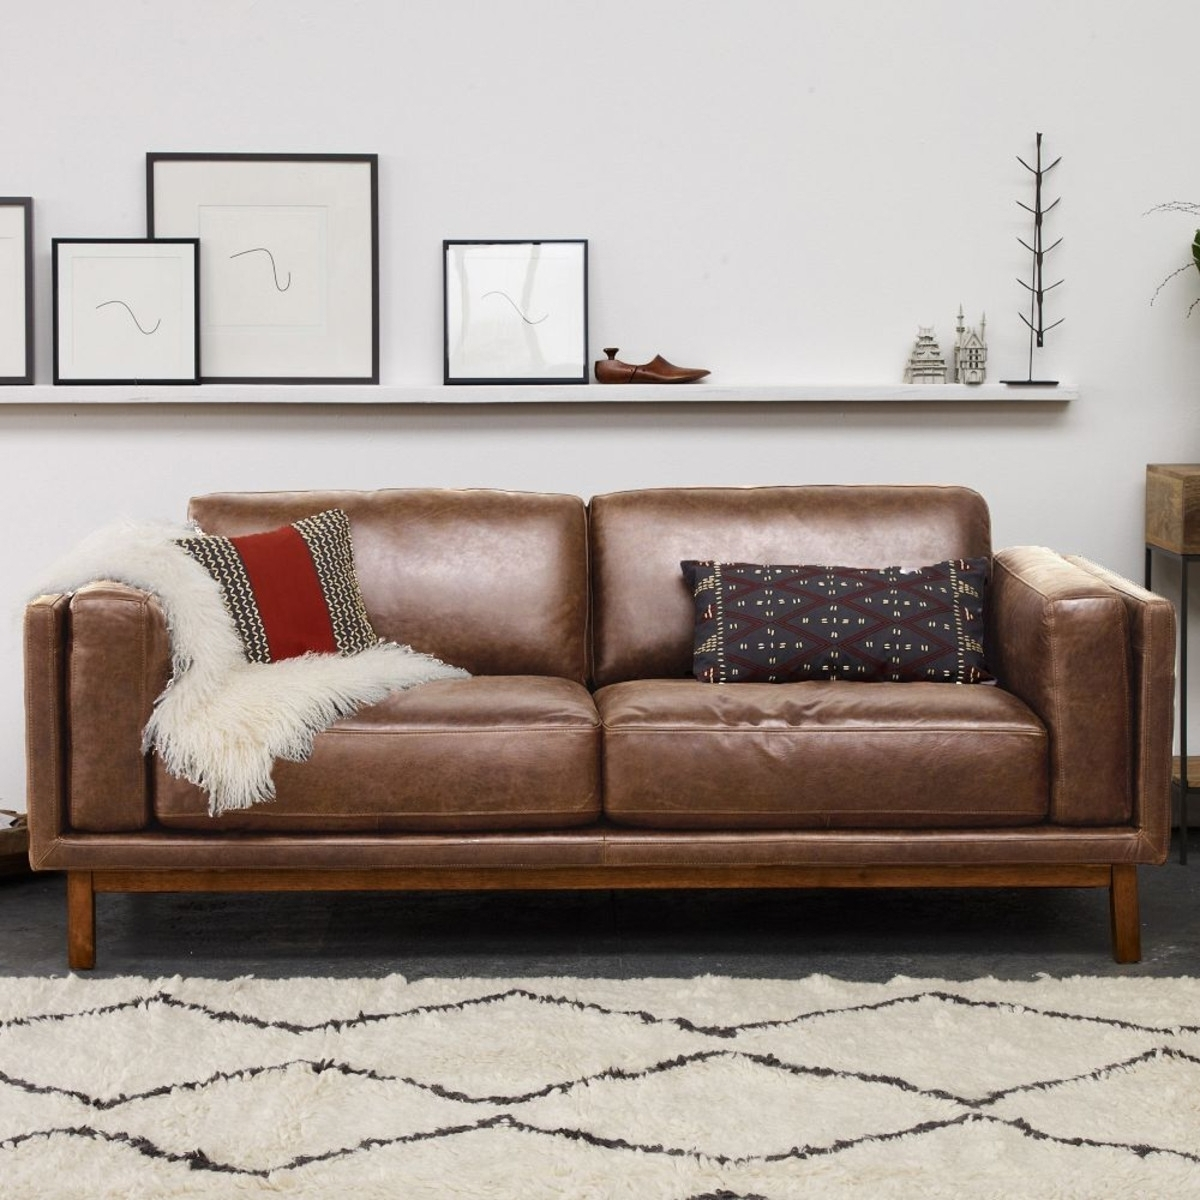 Bad Boy Furniture Sectional Sofas • Sectional Sofa Pertaining To Sectional Sofas At Bad Boy (View 5 of 10)